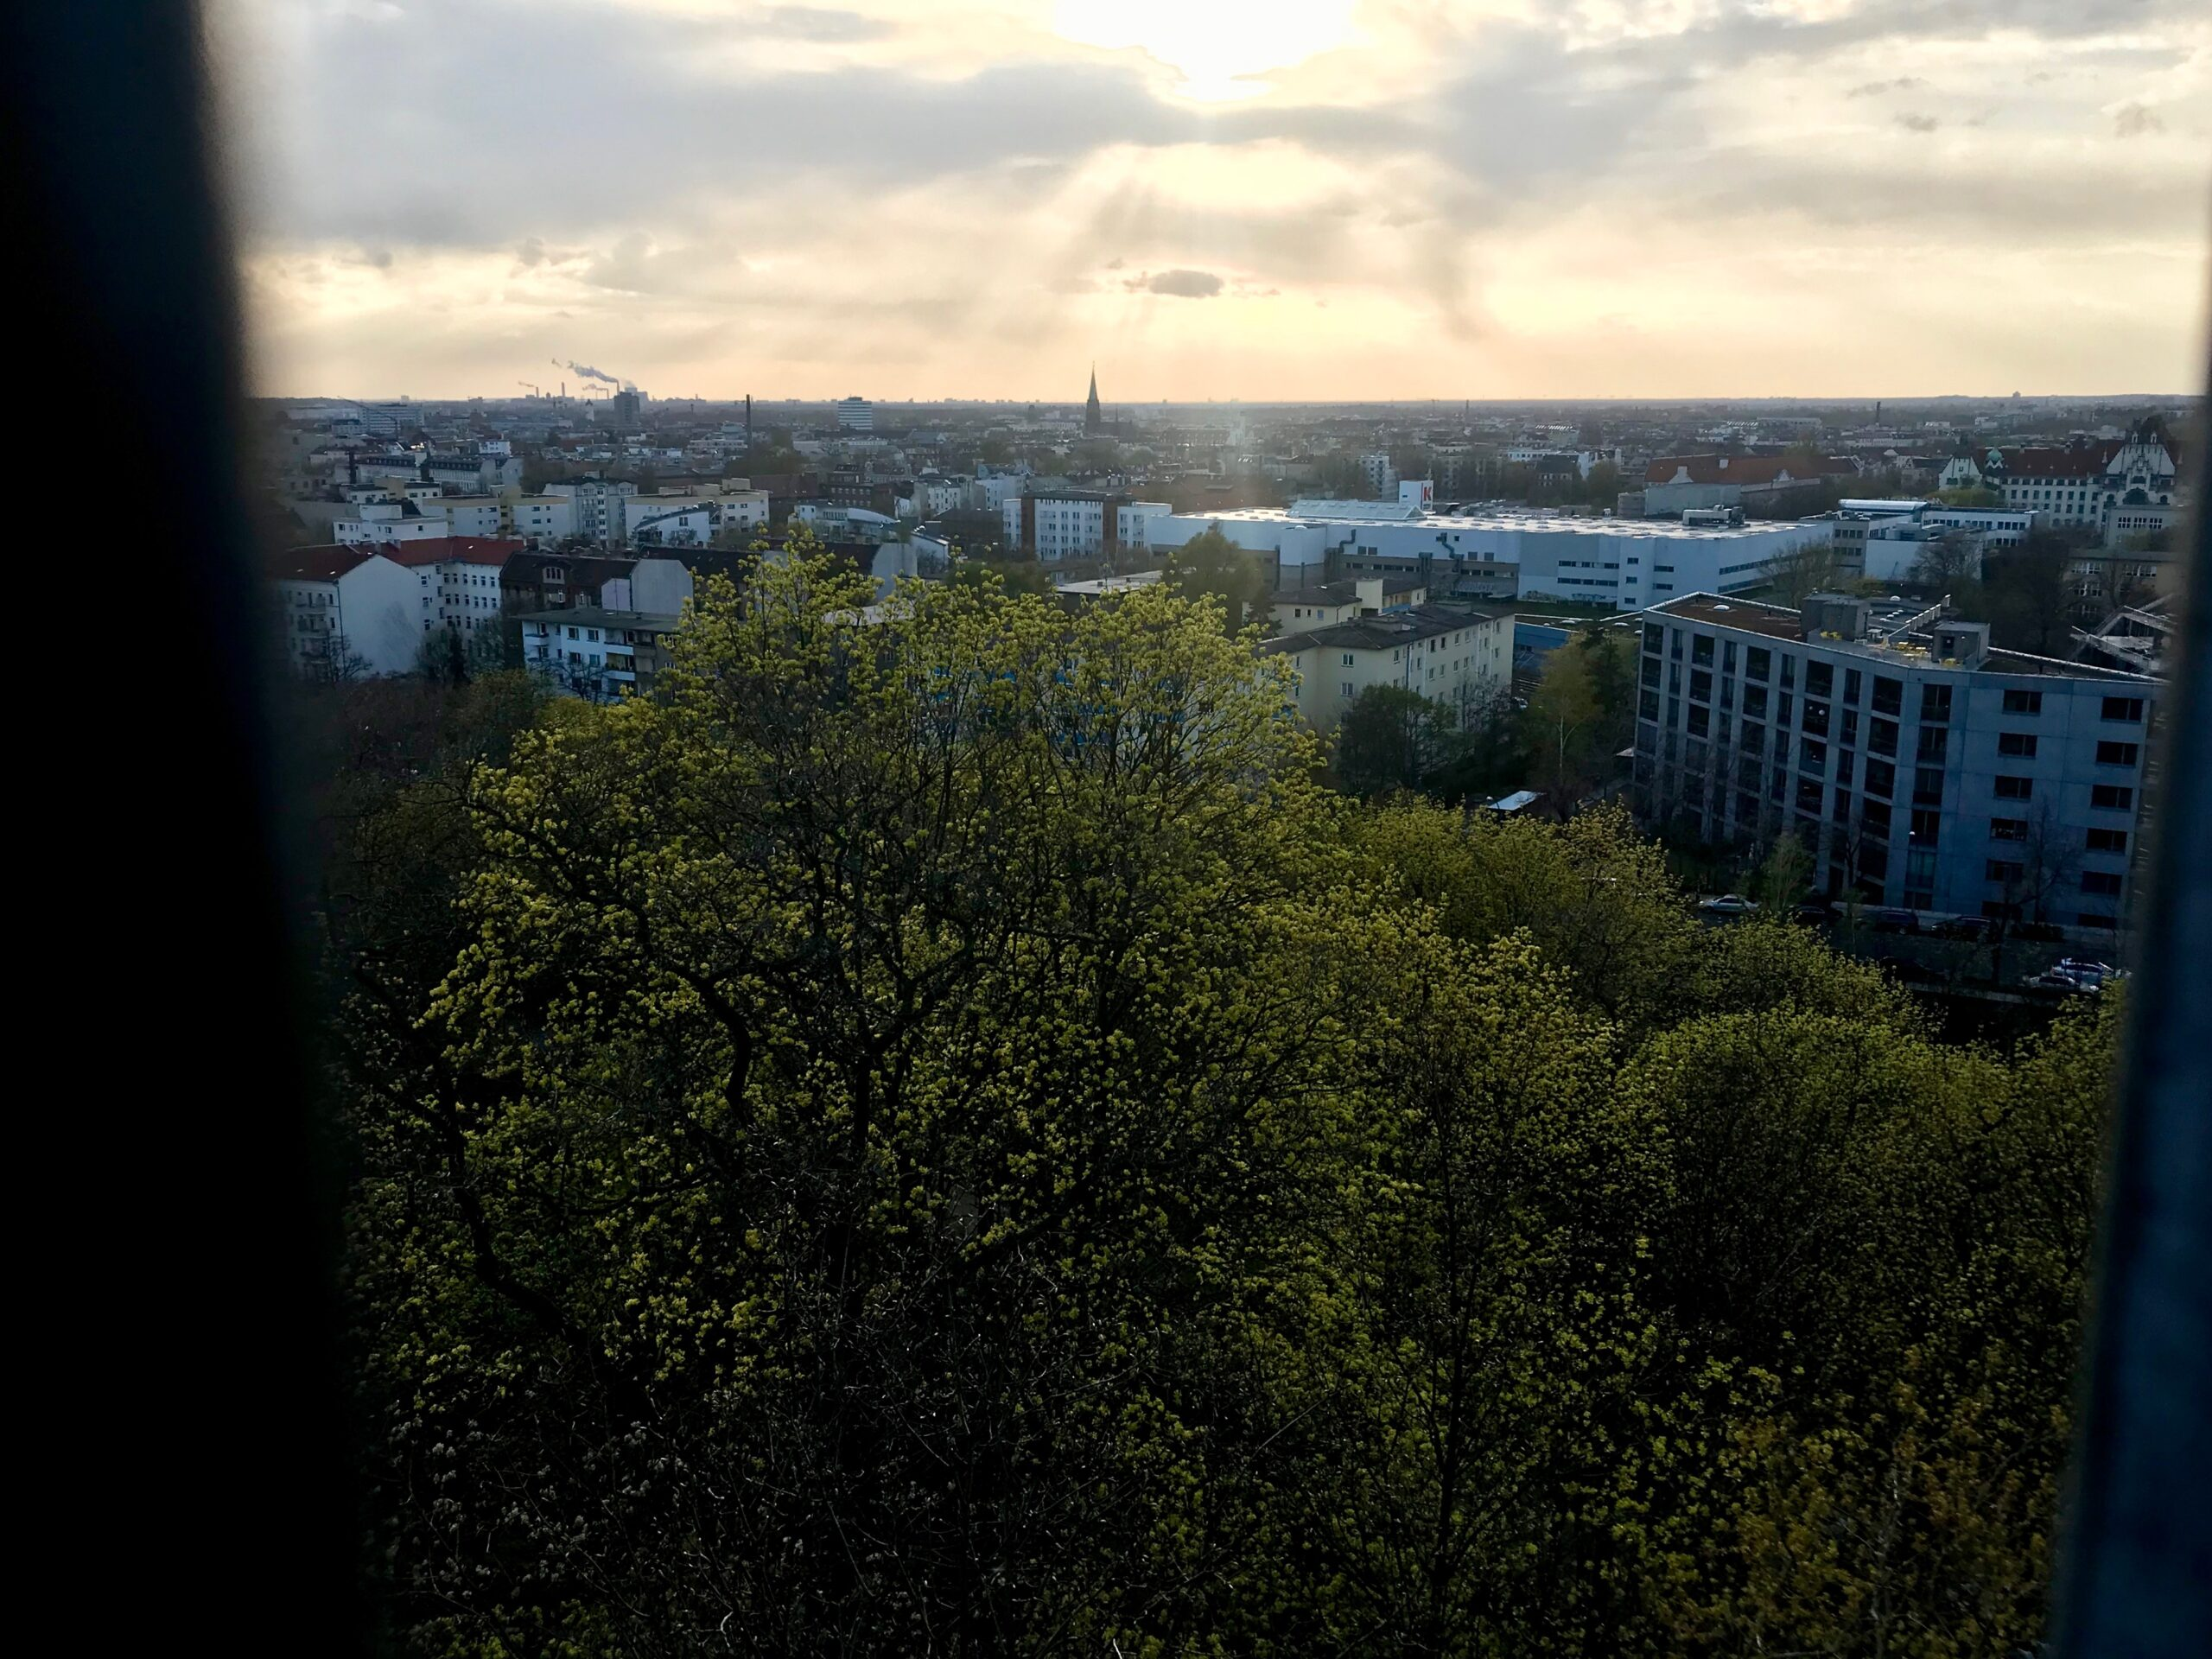 Aussicht Flakturm Humboldthain, Wedding, Berlin